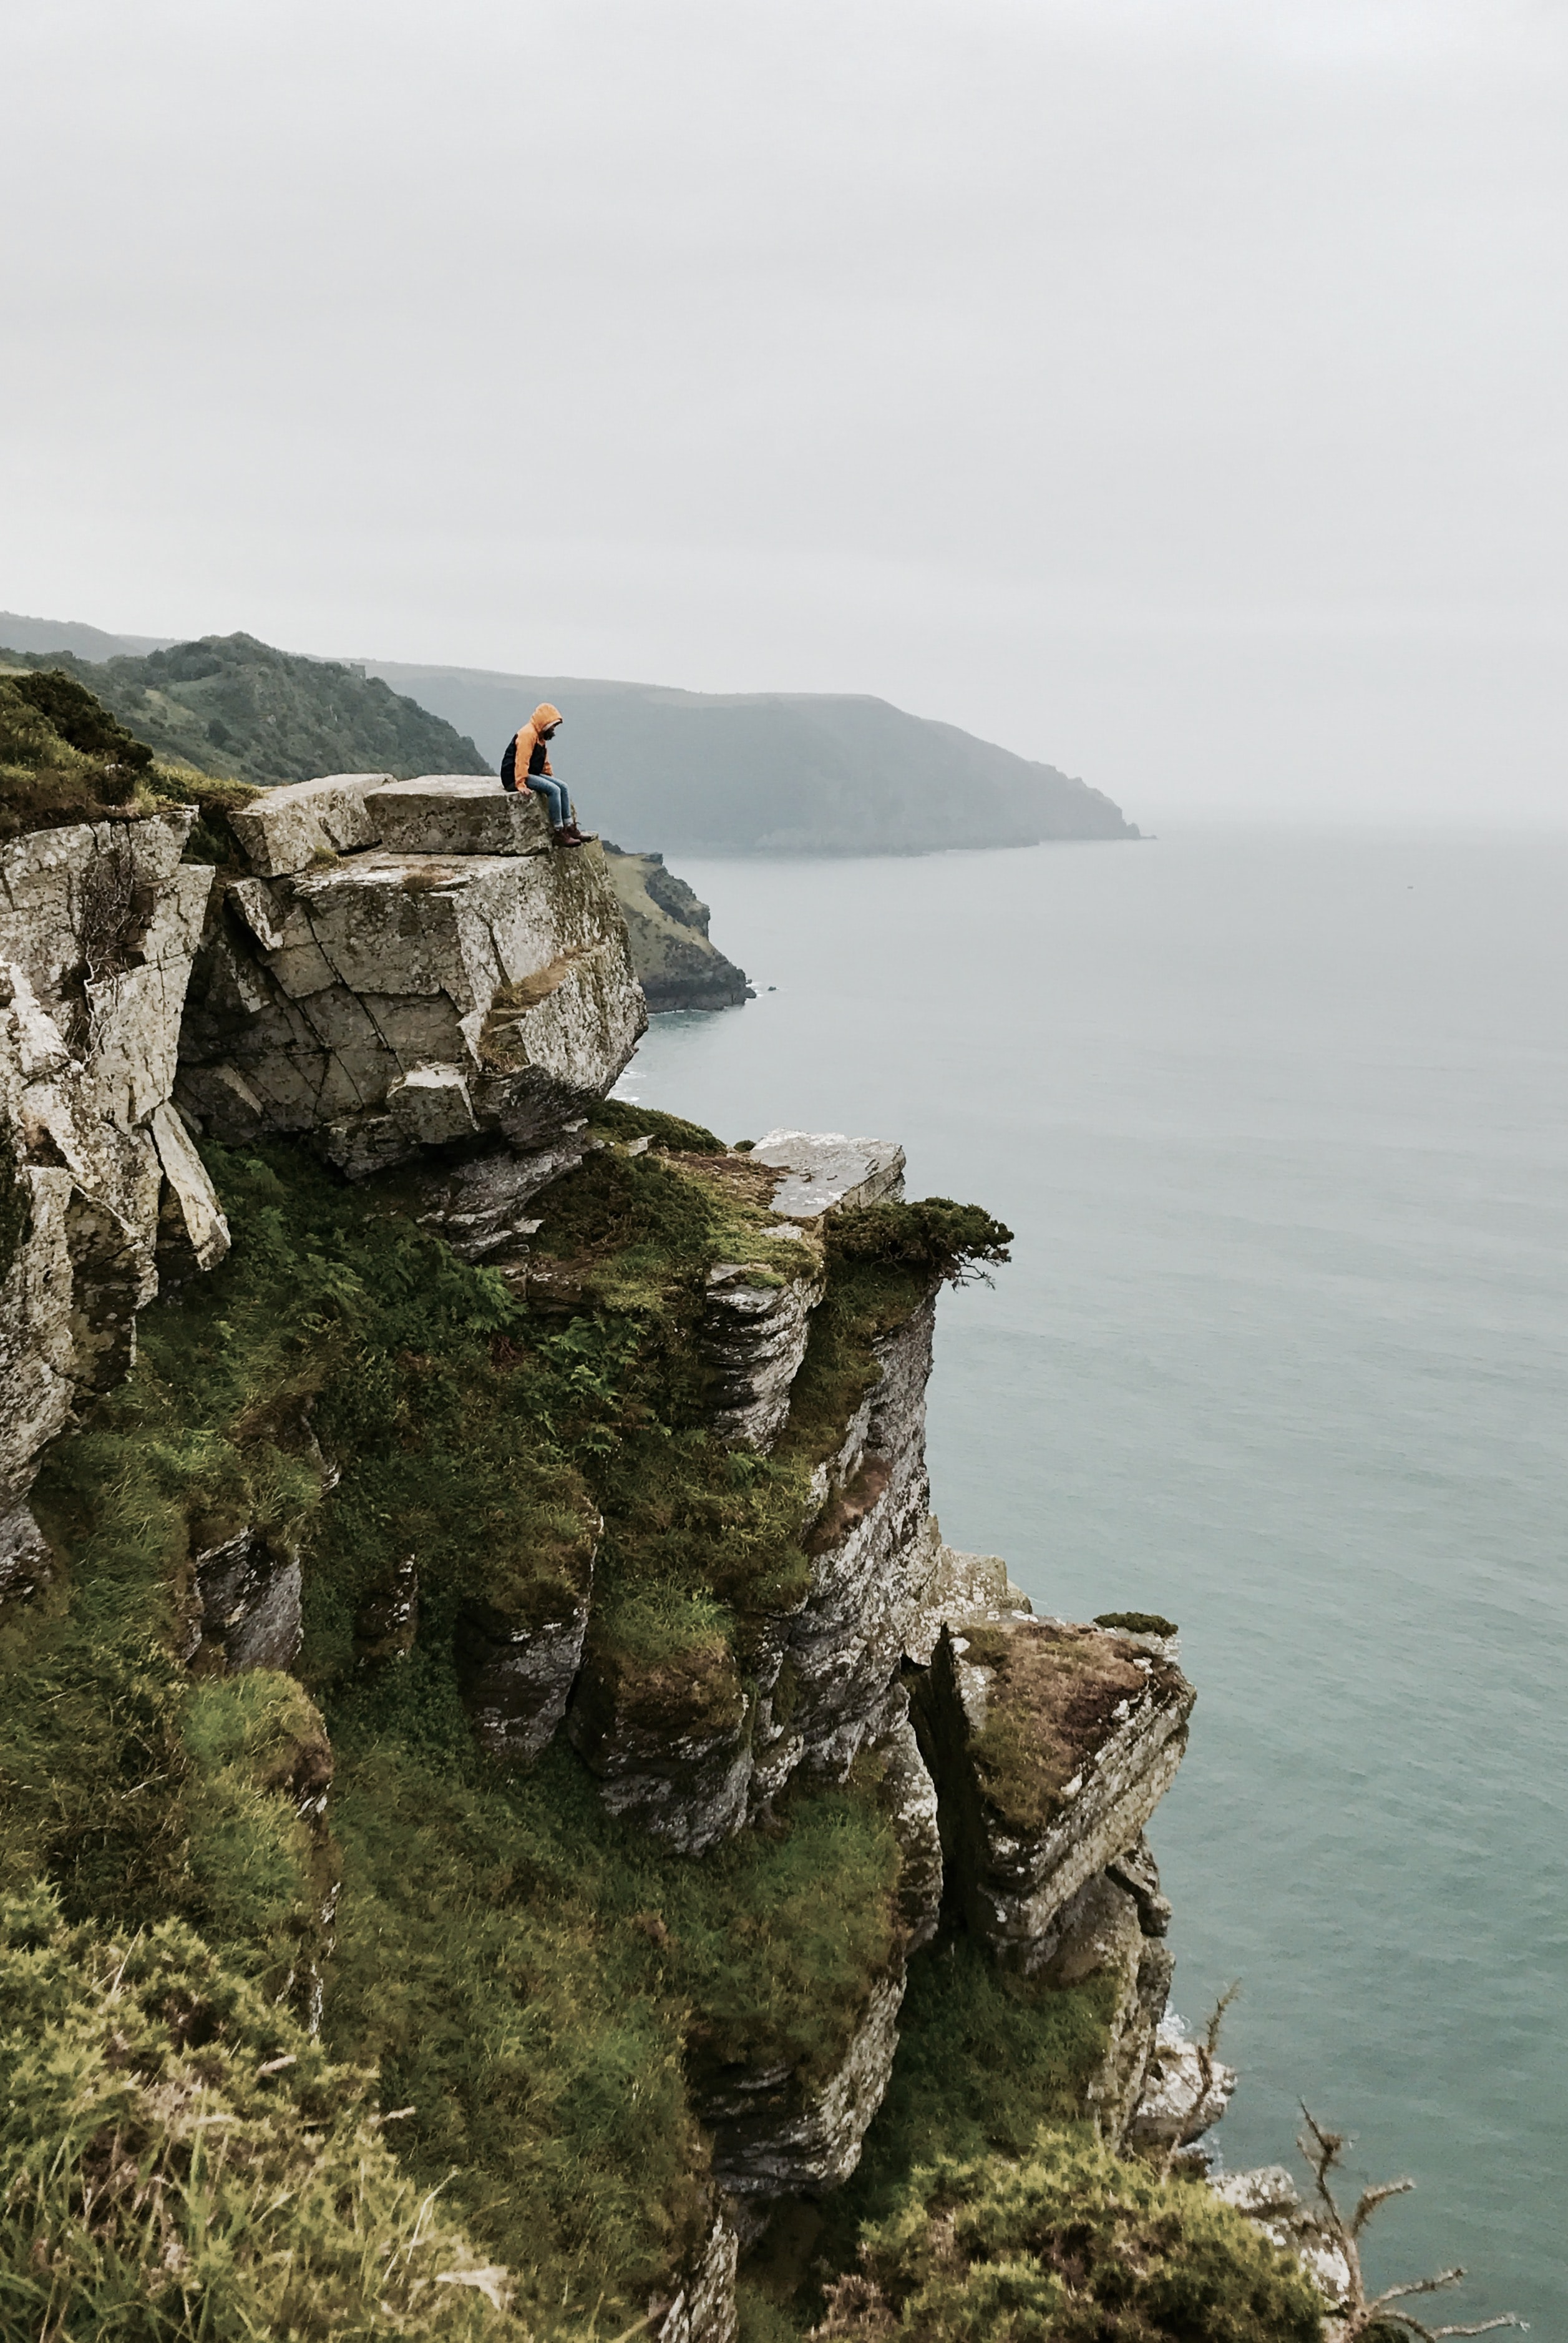 person sitting on cliffside during daytime